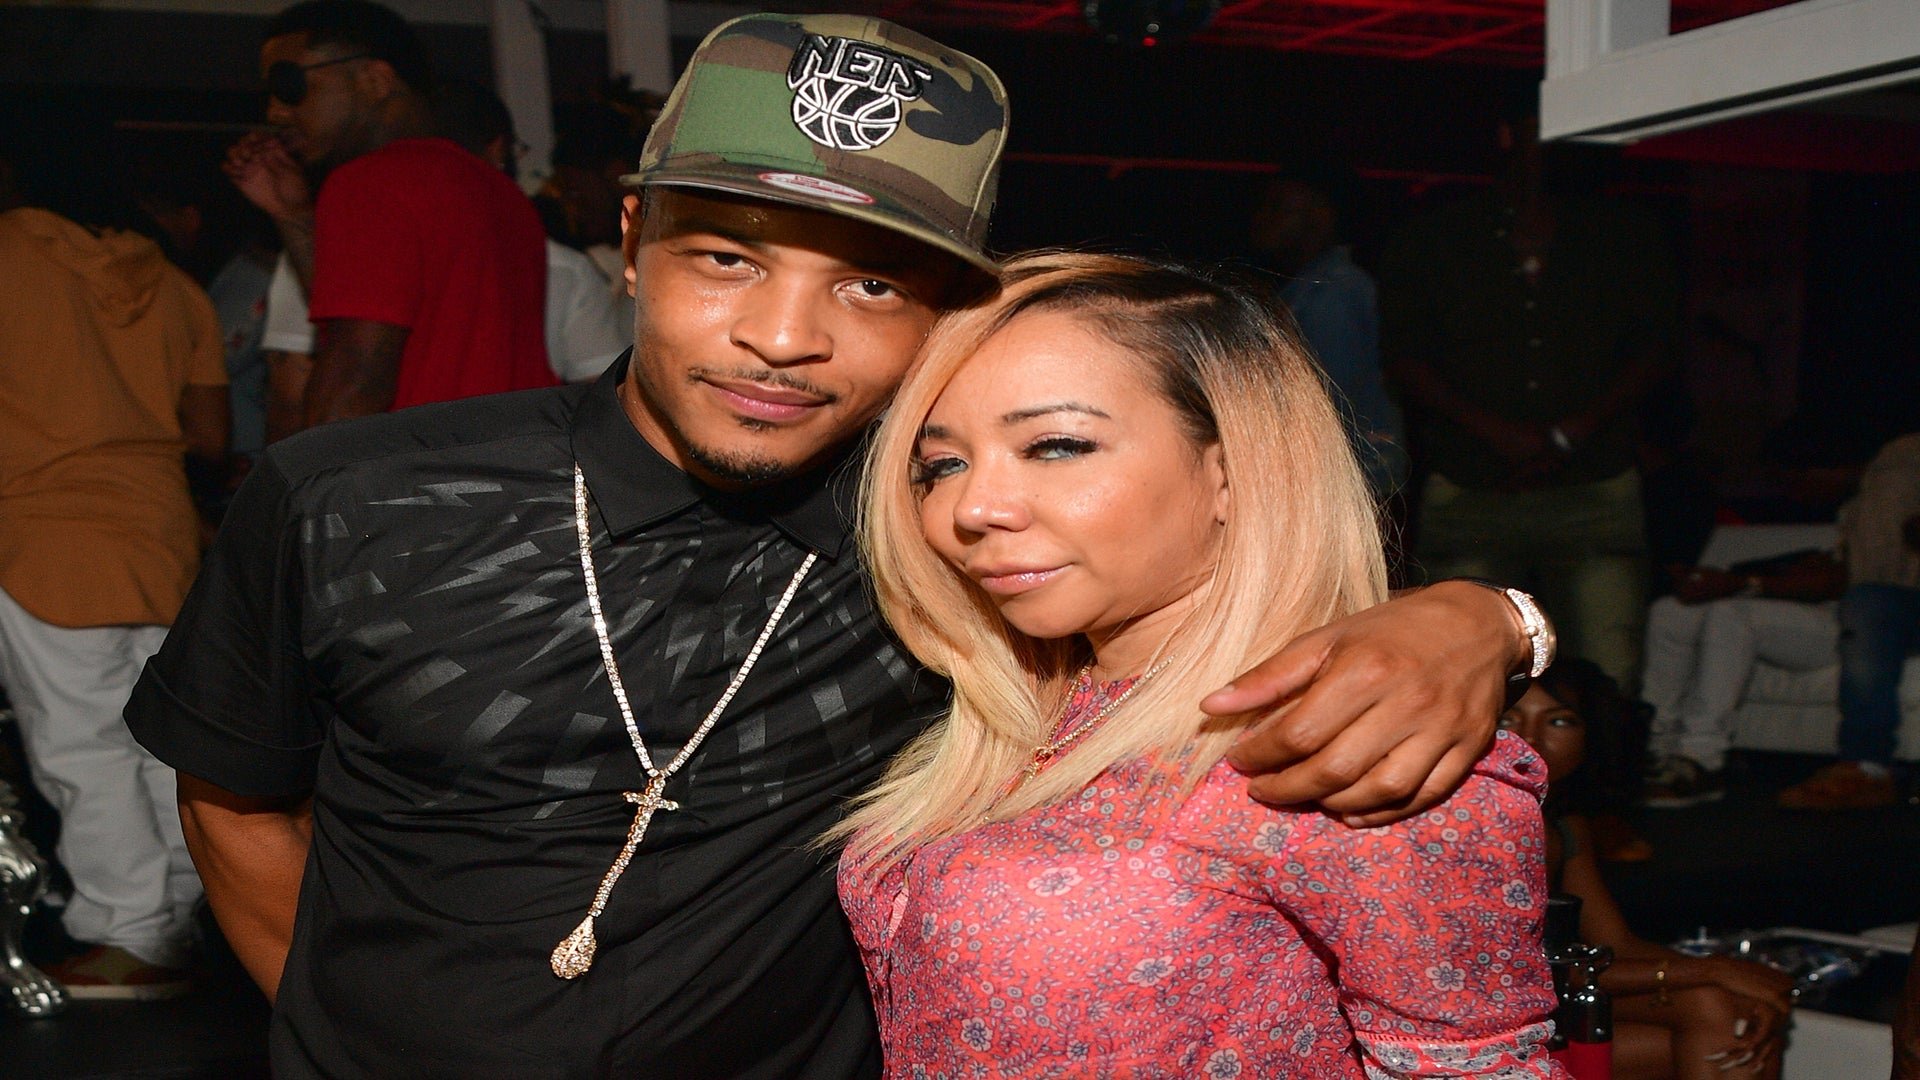 T.I. Reflects On His 7 Year Marriage To Tiny On Their Anniversary